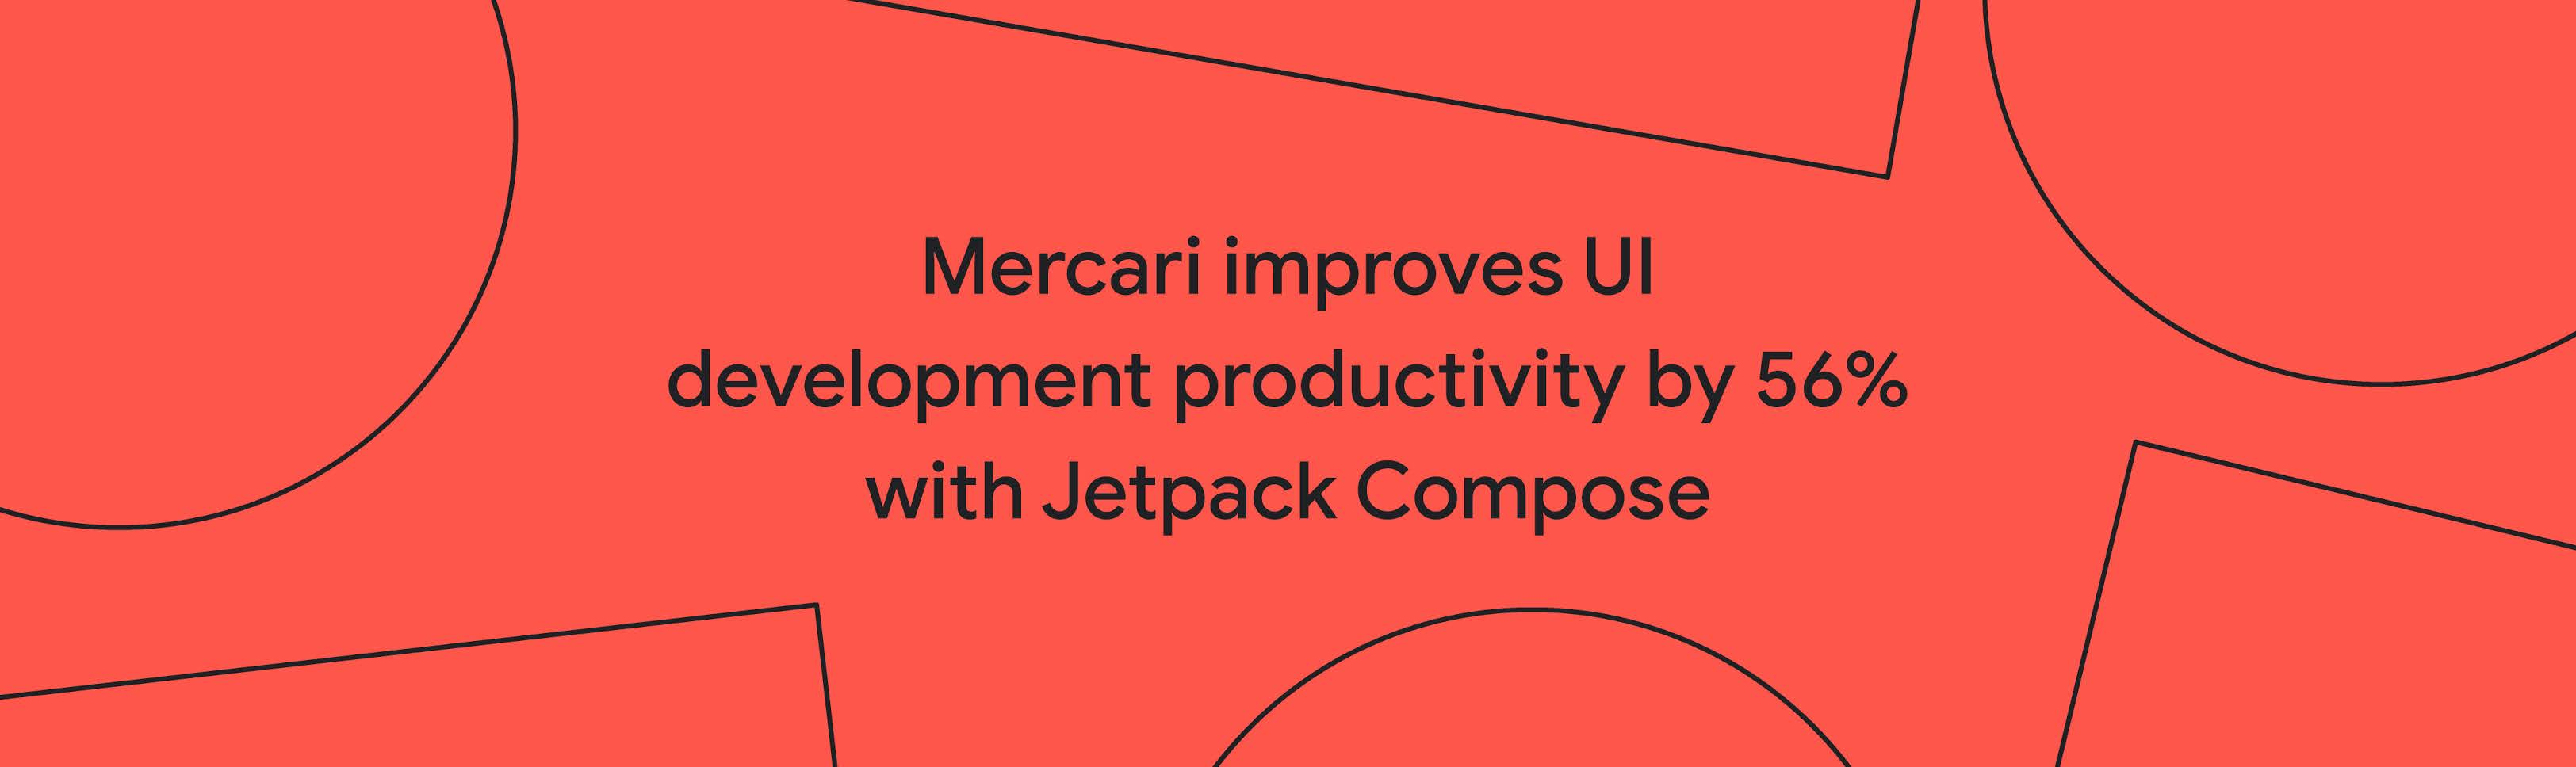 Mercari Improves UI Development Productivity with Jetpack Compose by 56%